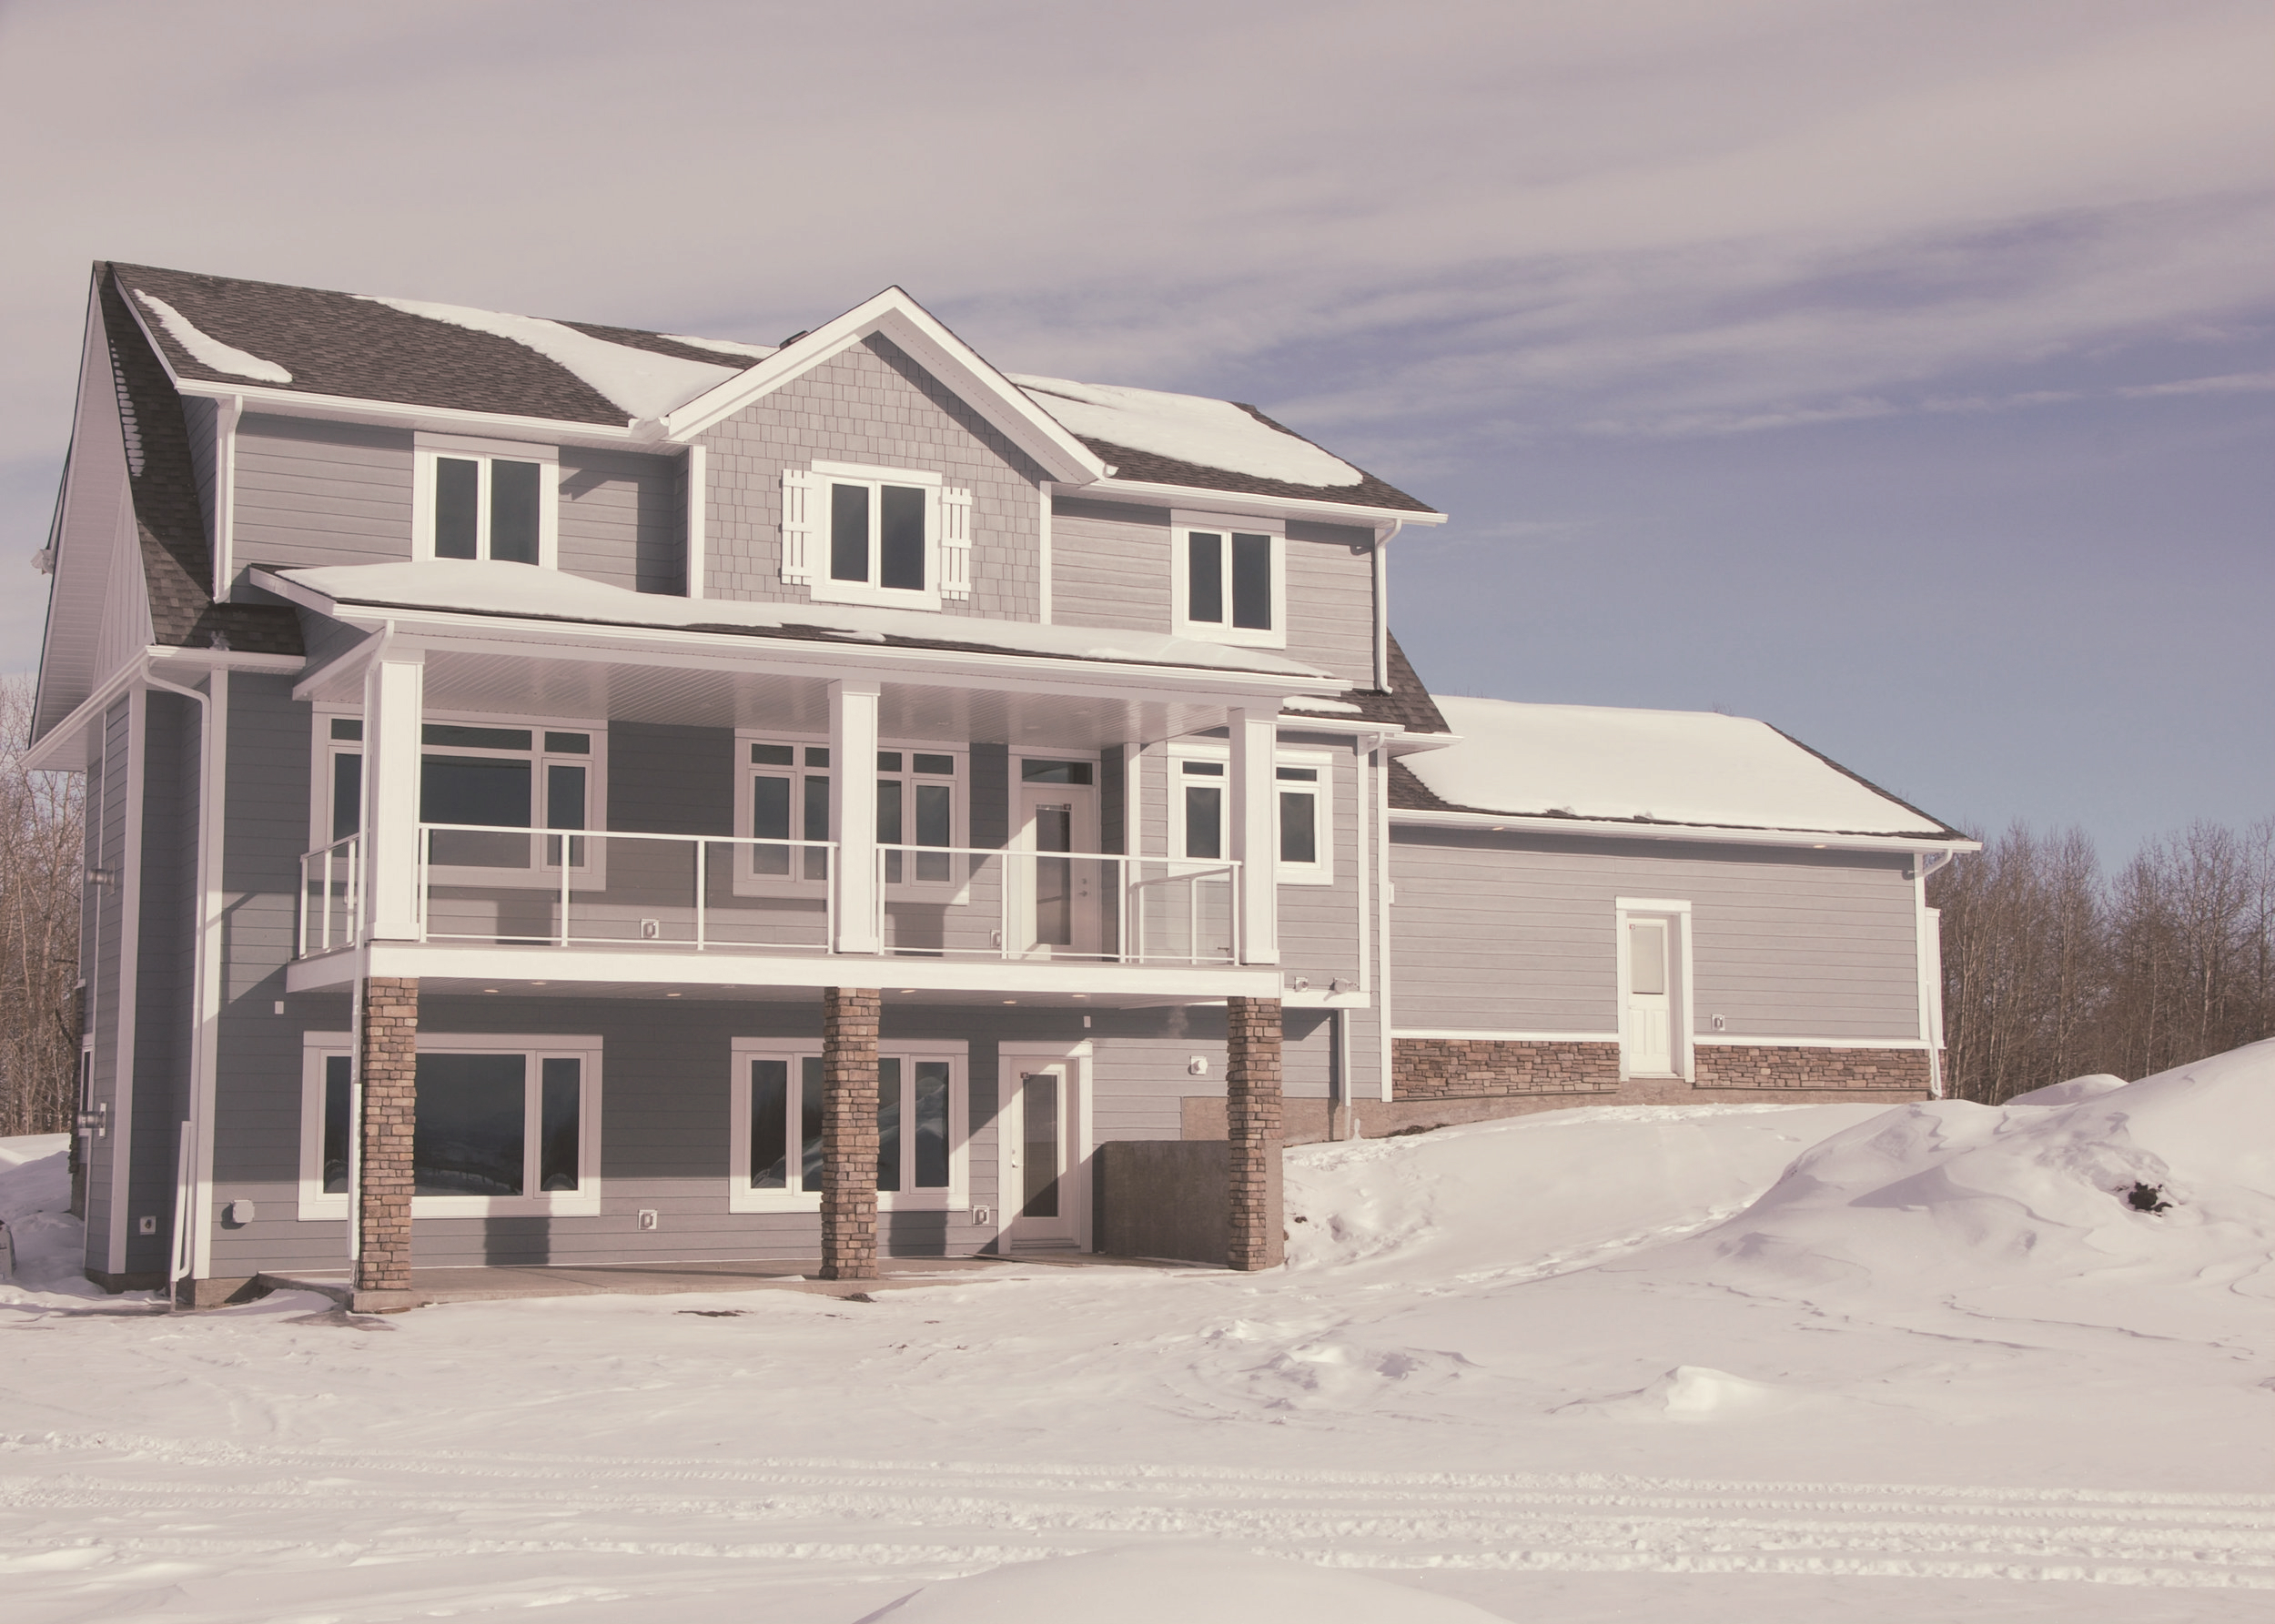 The back of the home faces westward towards the majestic rocky mountains. The covered patios make indoor-outdoor living accessible and comfortable.